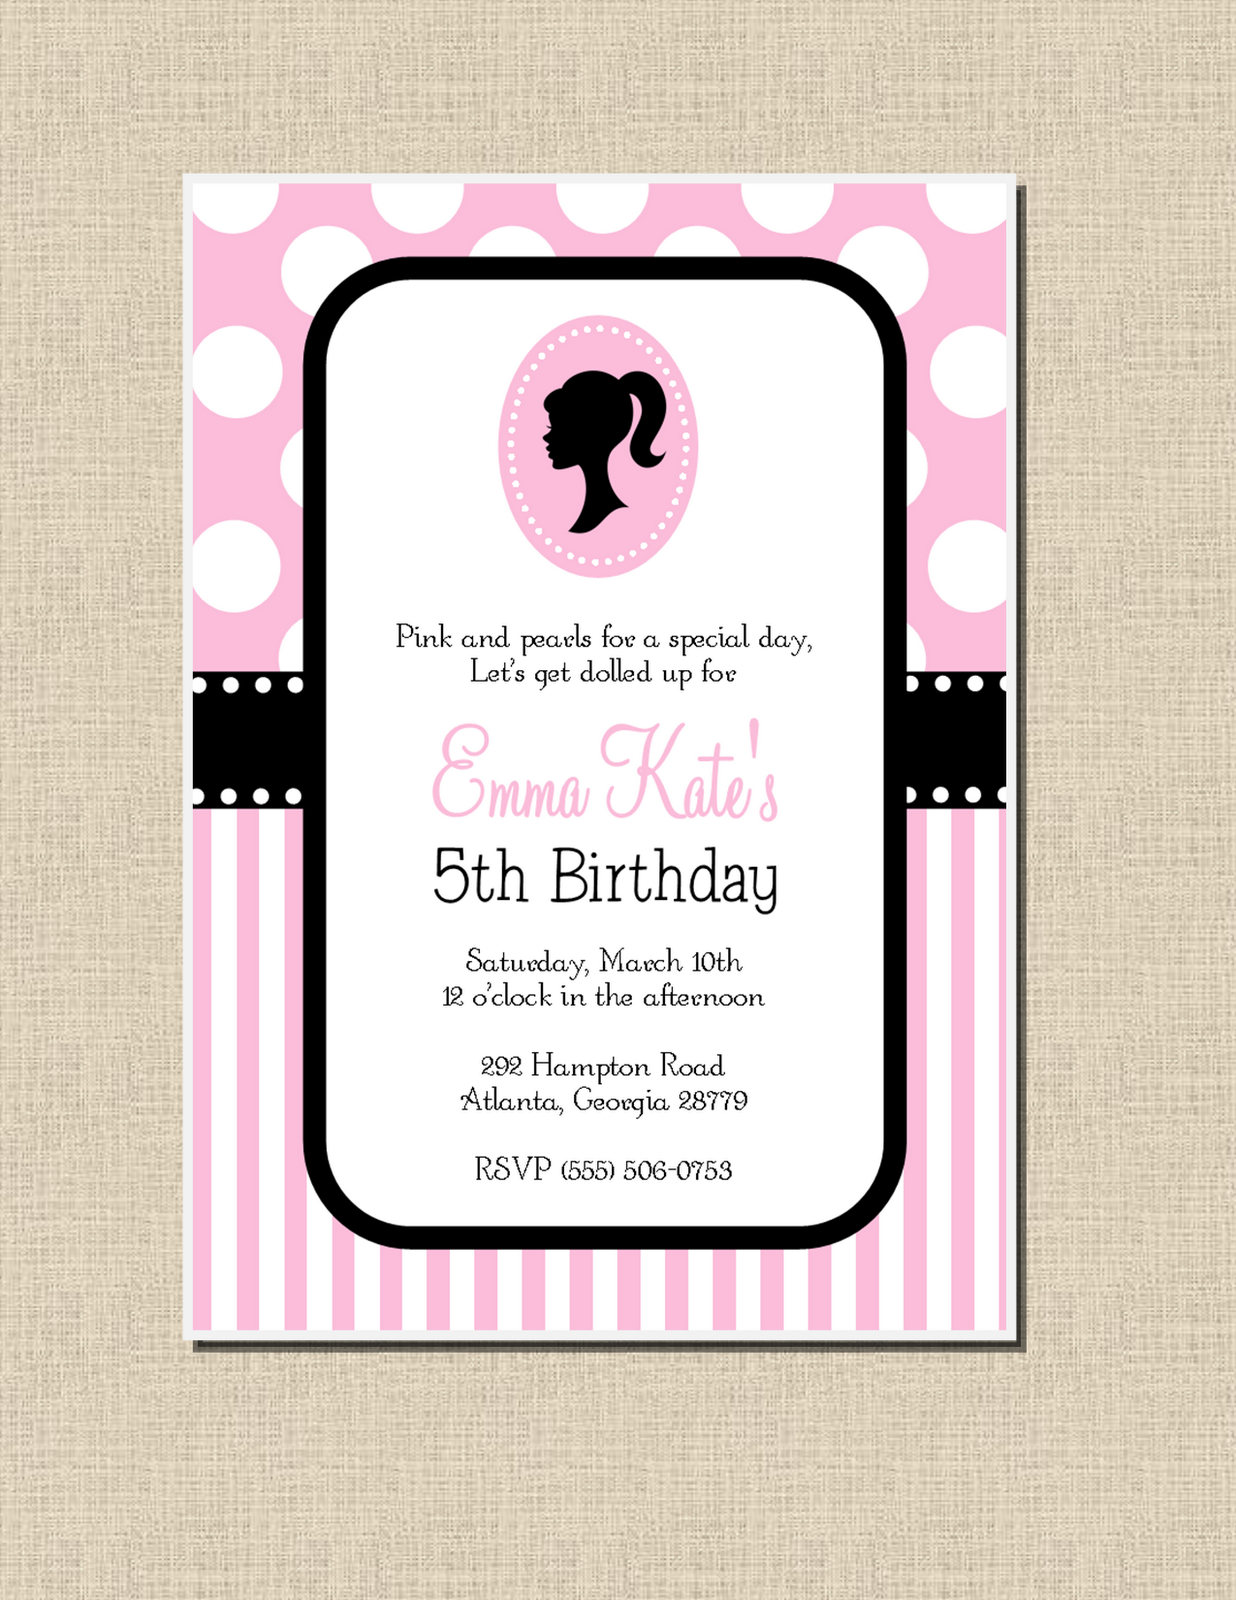 Sweet Peach Paperie - Archive - birthday invitations